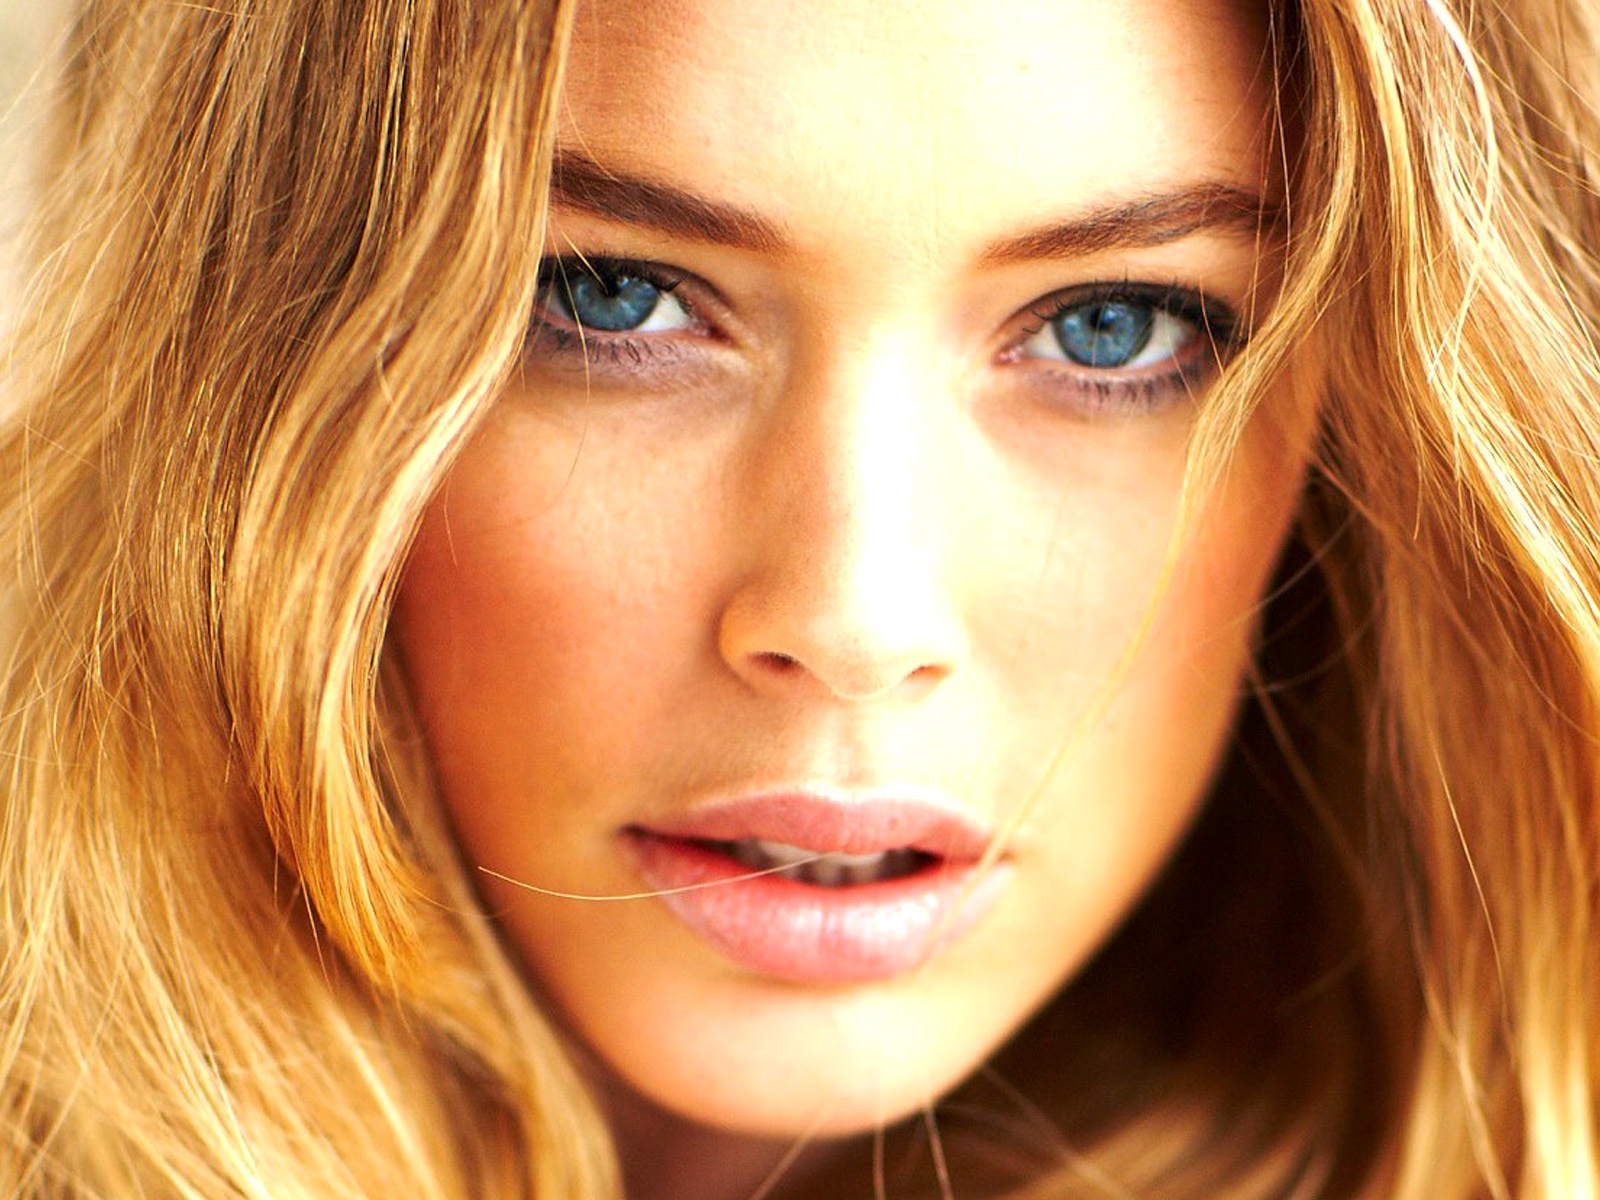 click to free download the wallpaper--Incredible TV Show Pics, Doutzen Kroes in Blonde Hair, Face Portrait, Simply Perfect  1600X1200 free wallpaper download